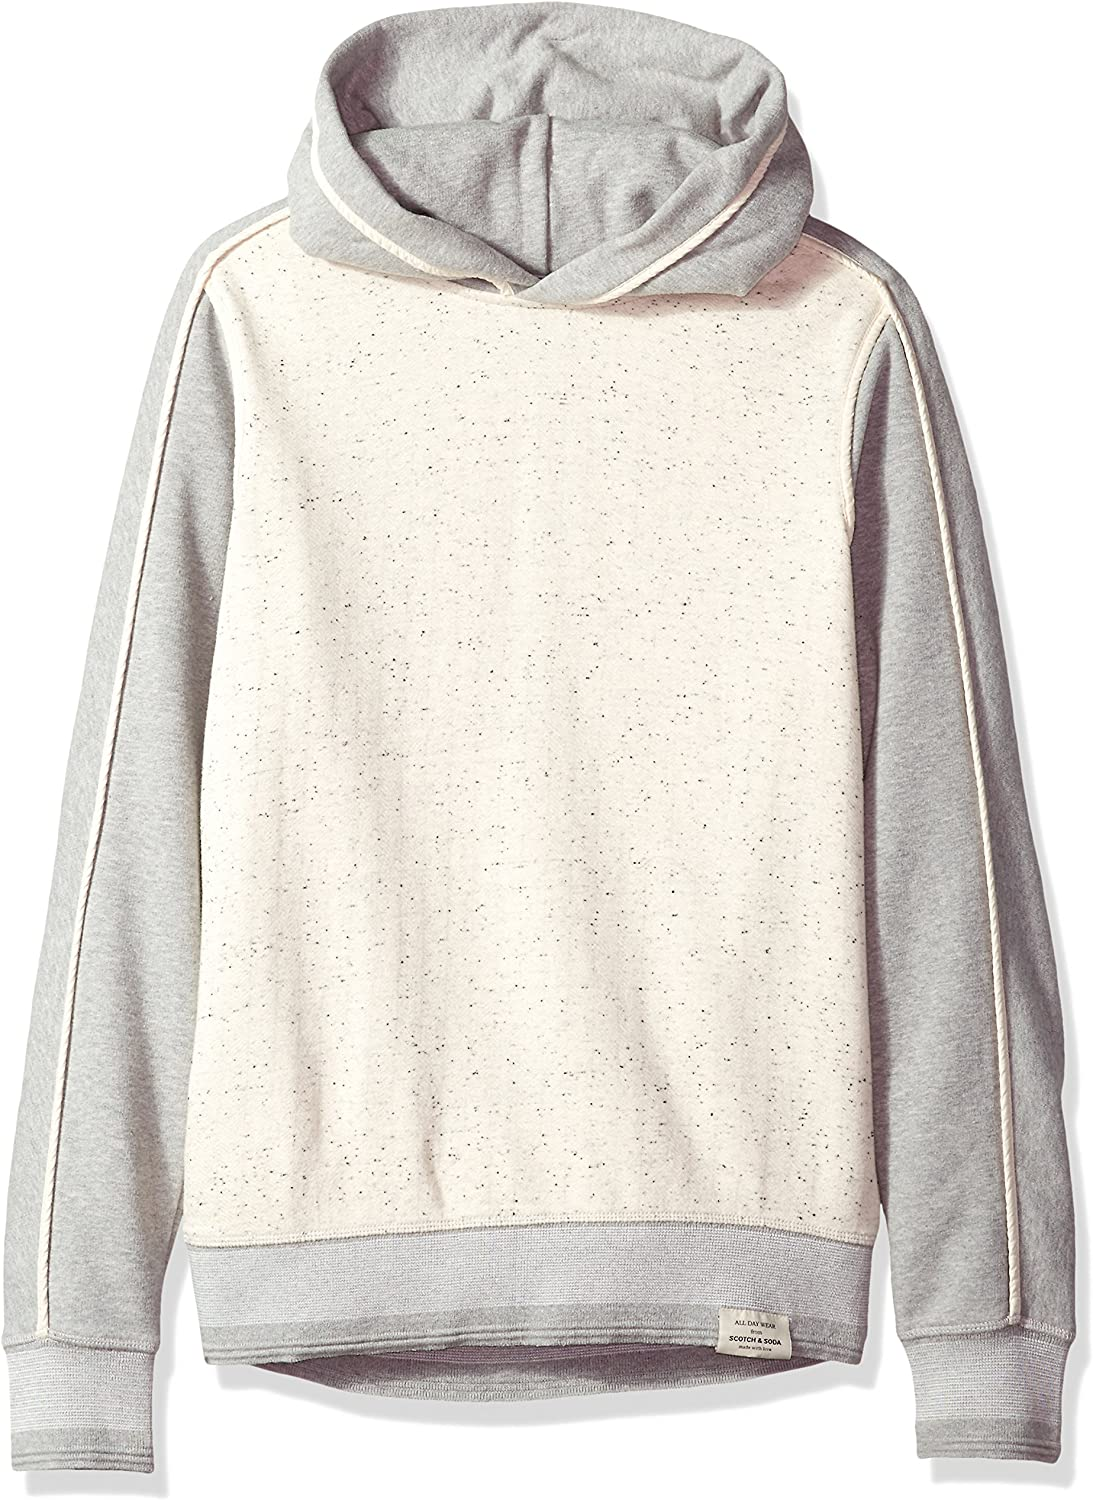 Scotch /& Soda Mens Hooded Sweat in Mix /& Match Quality with Binding Details